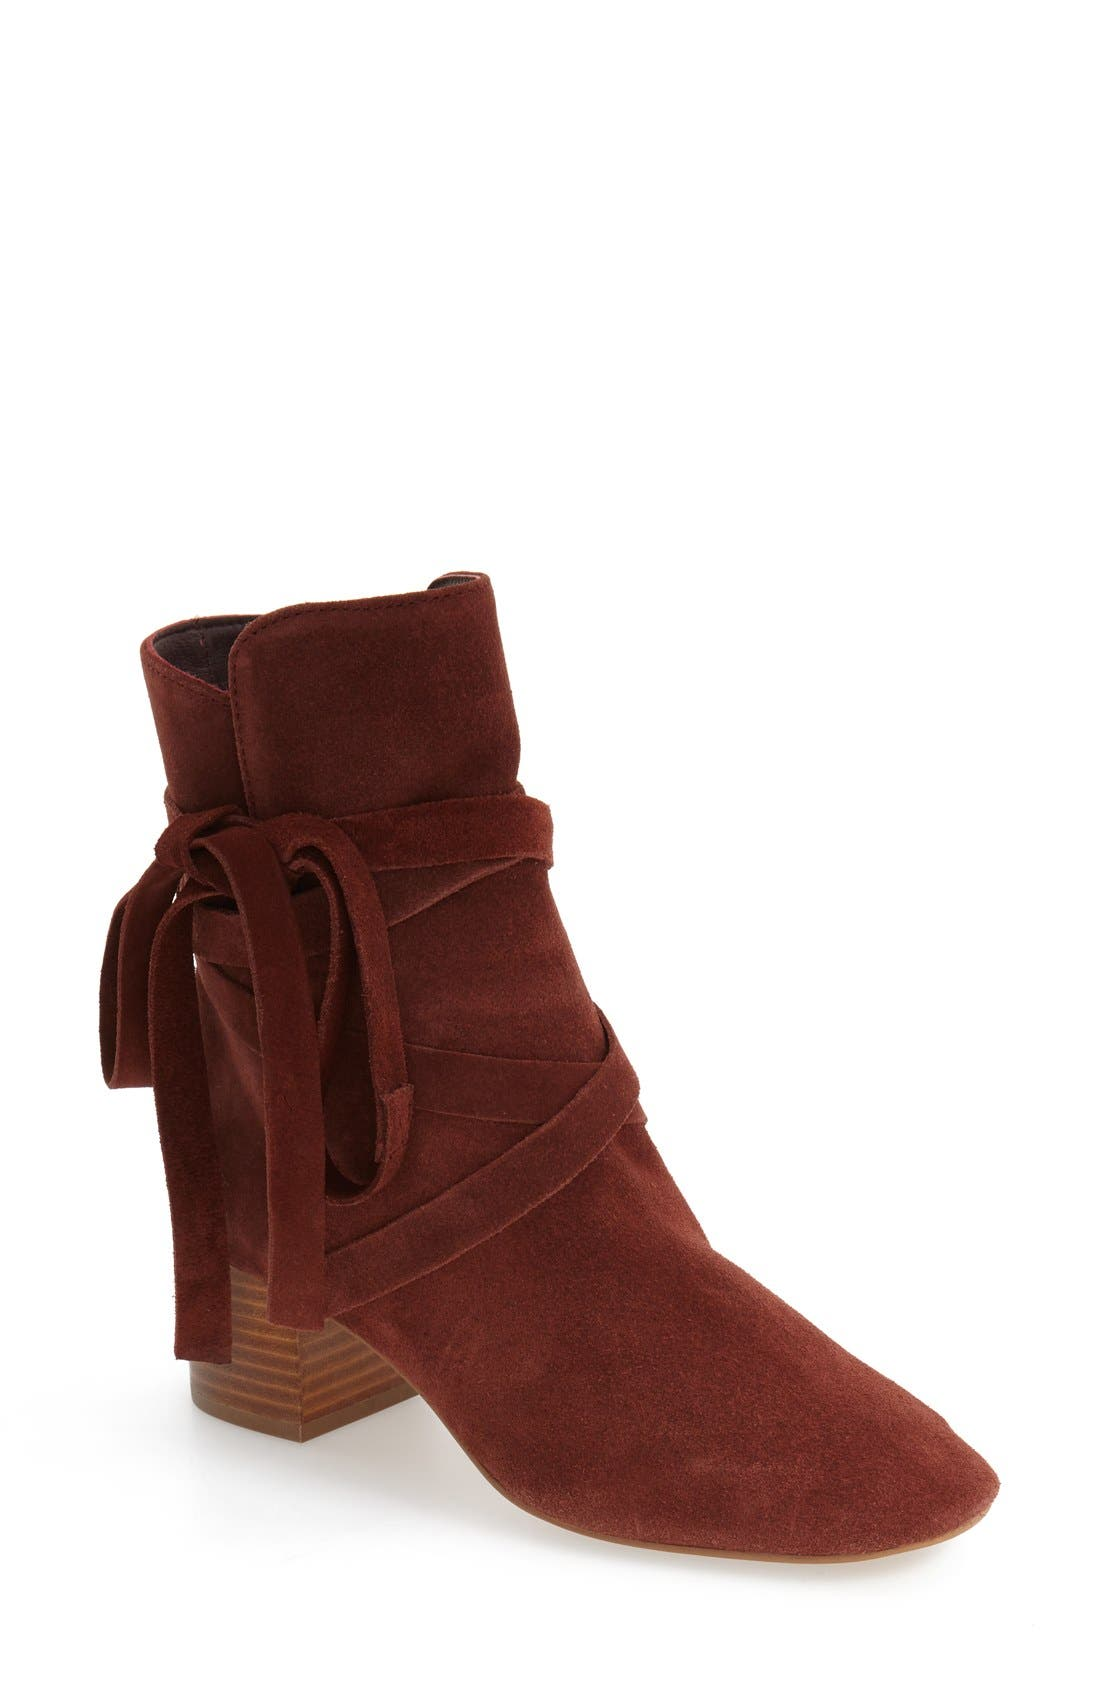 Main Image - Topshop 'Anabel' Lace-Up Boots (Women)